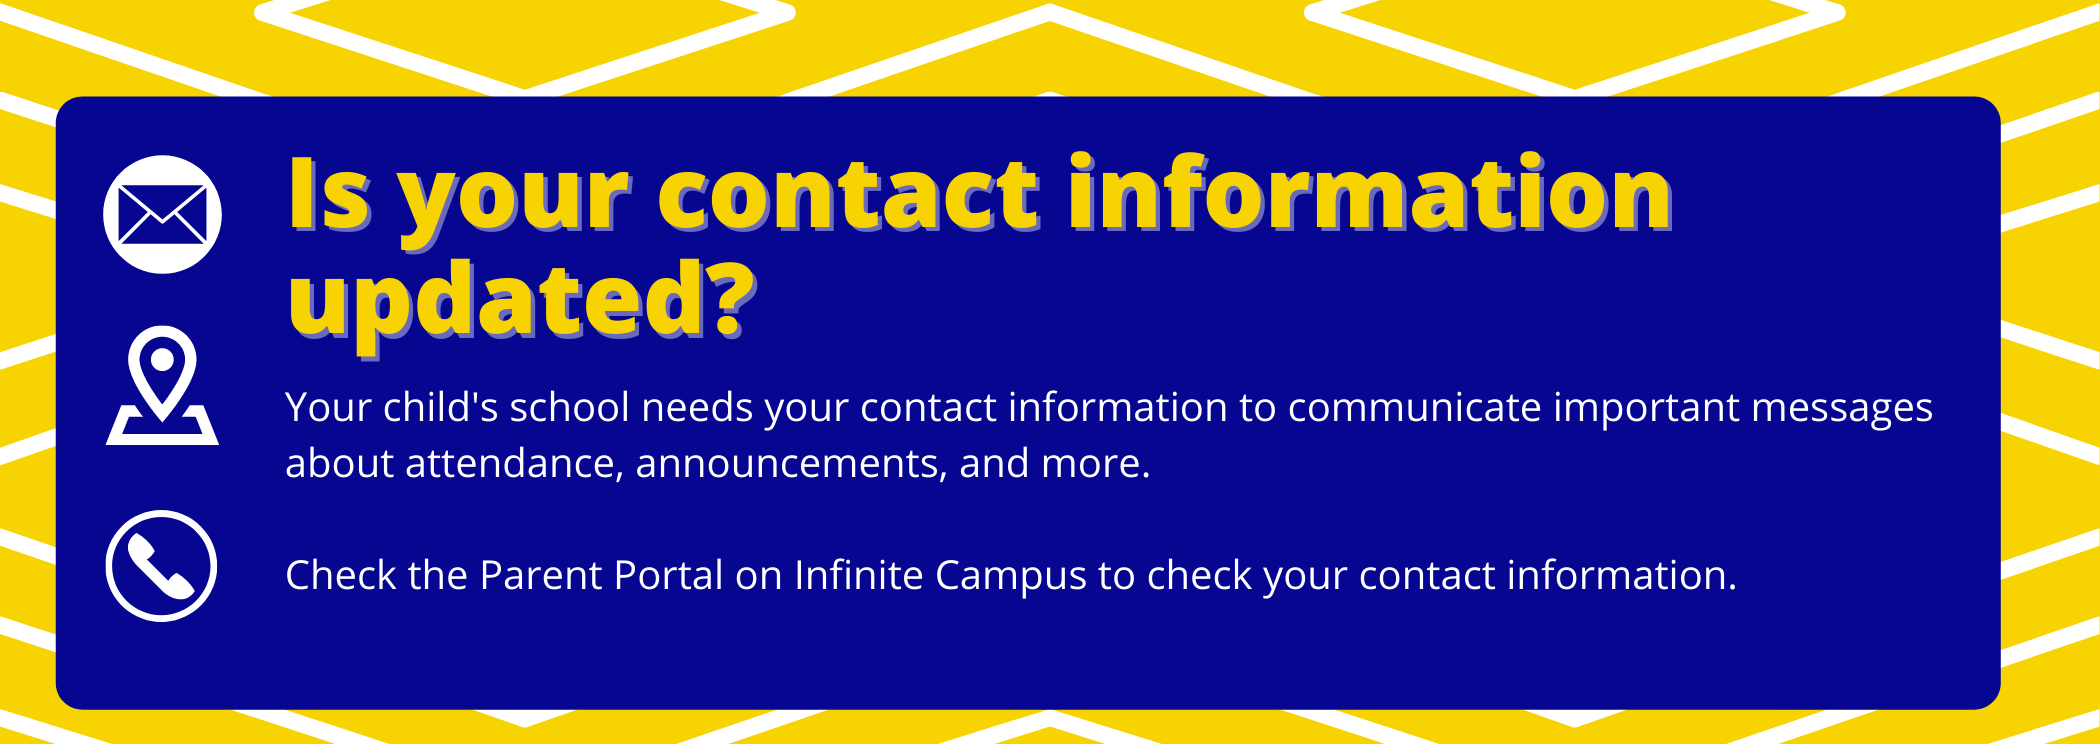 is your contact information updated? your child's school needs your contact information to communicate important messages about attendance, announcements, and more. check the parent portal on infinite campus to check your contact information